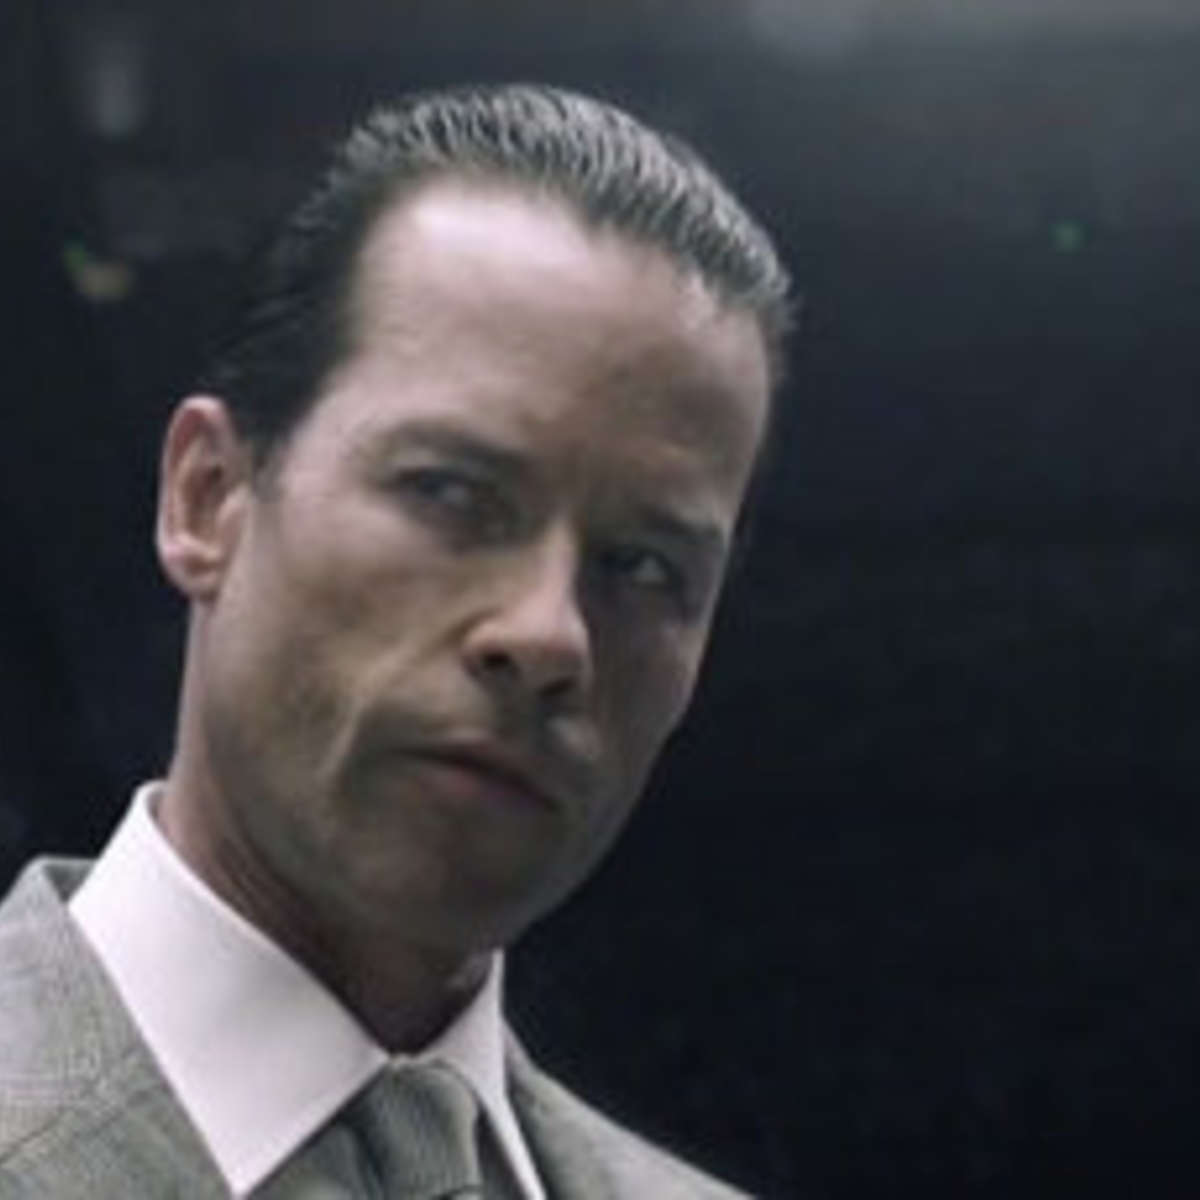 prometheus-guy-pearce-weyland-ted_0.jpg